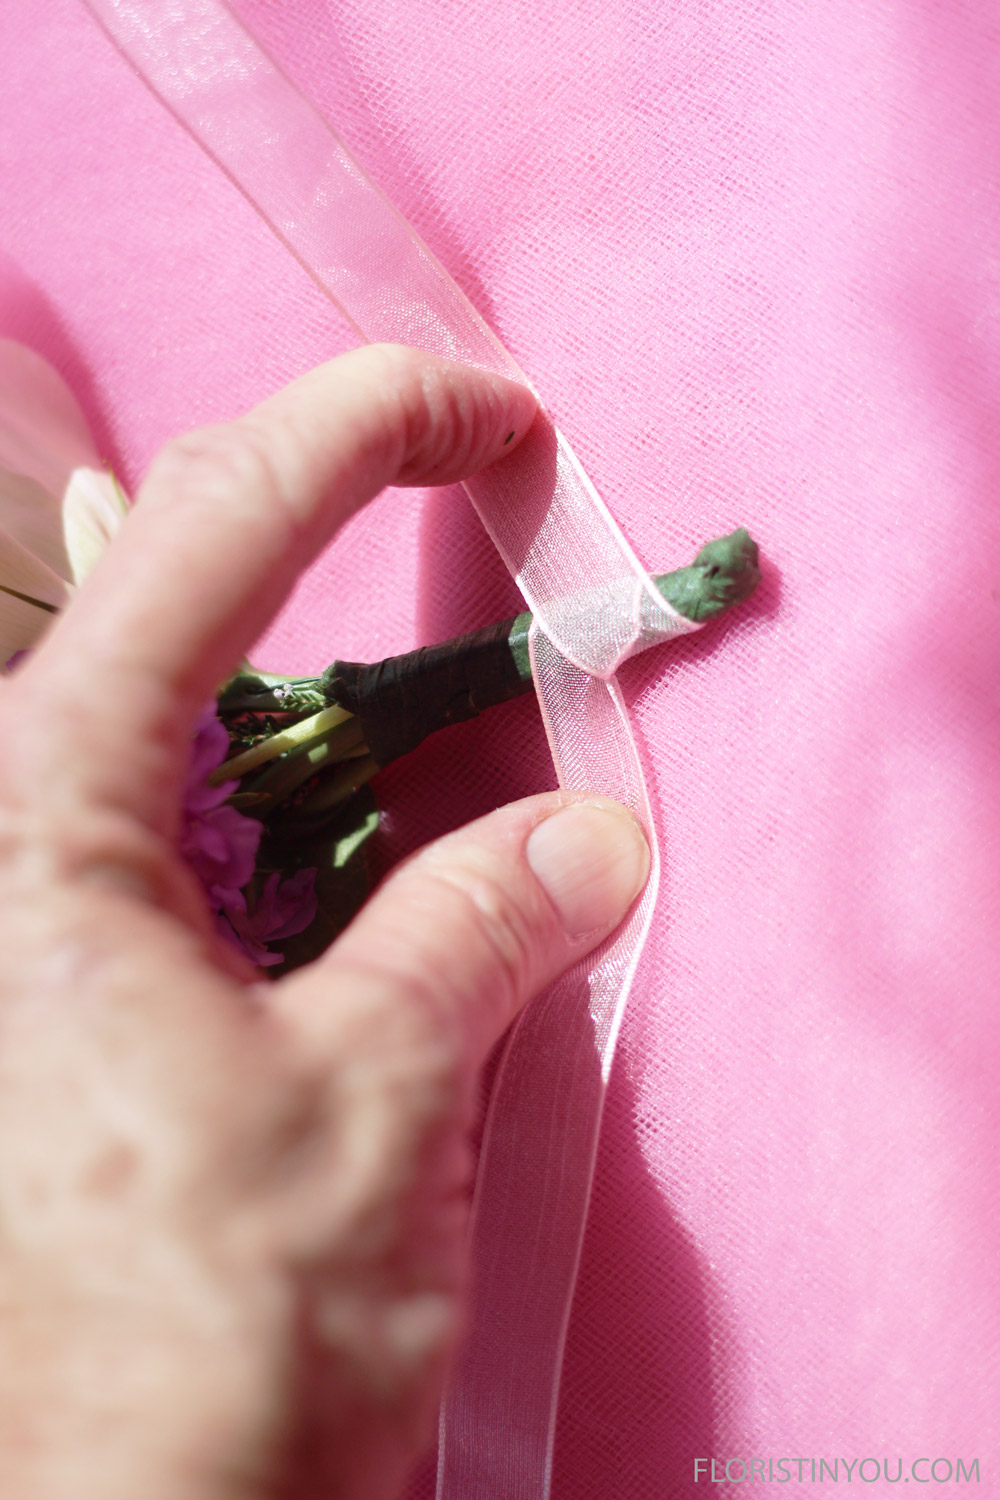 Place corsage in middle of ribbon. Wrap by crossing ribbon, wrapping, crossing, etc.